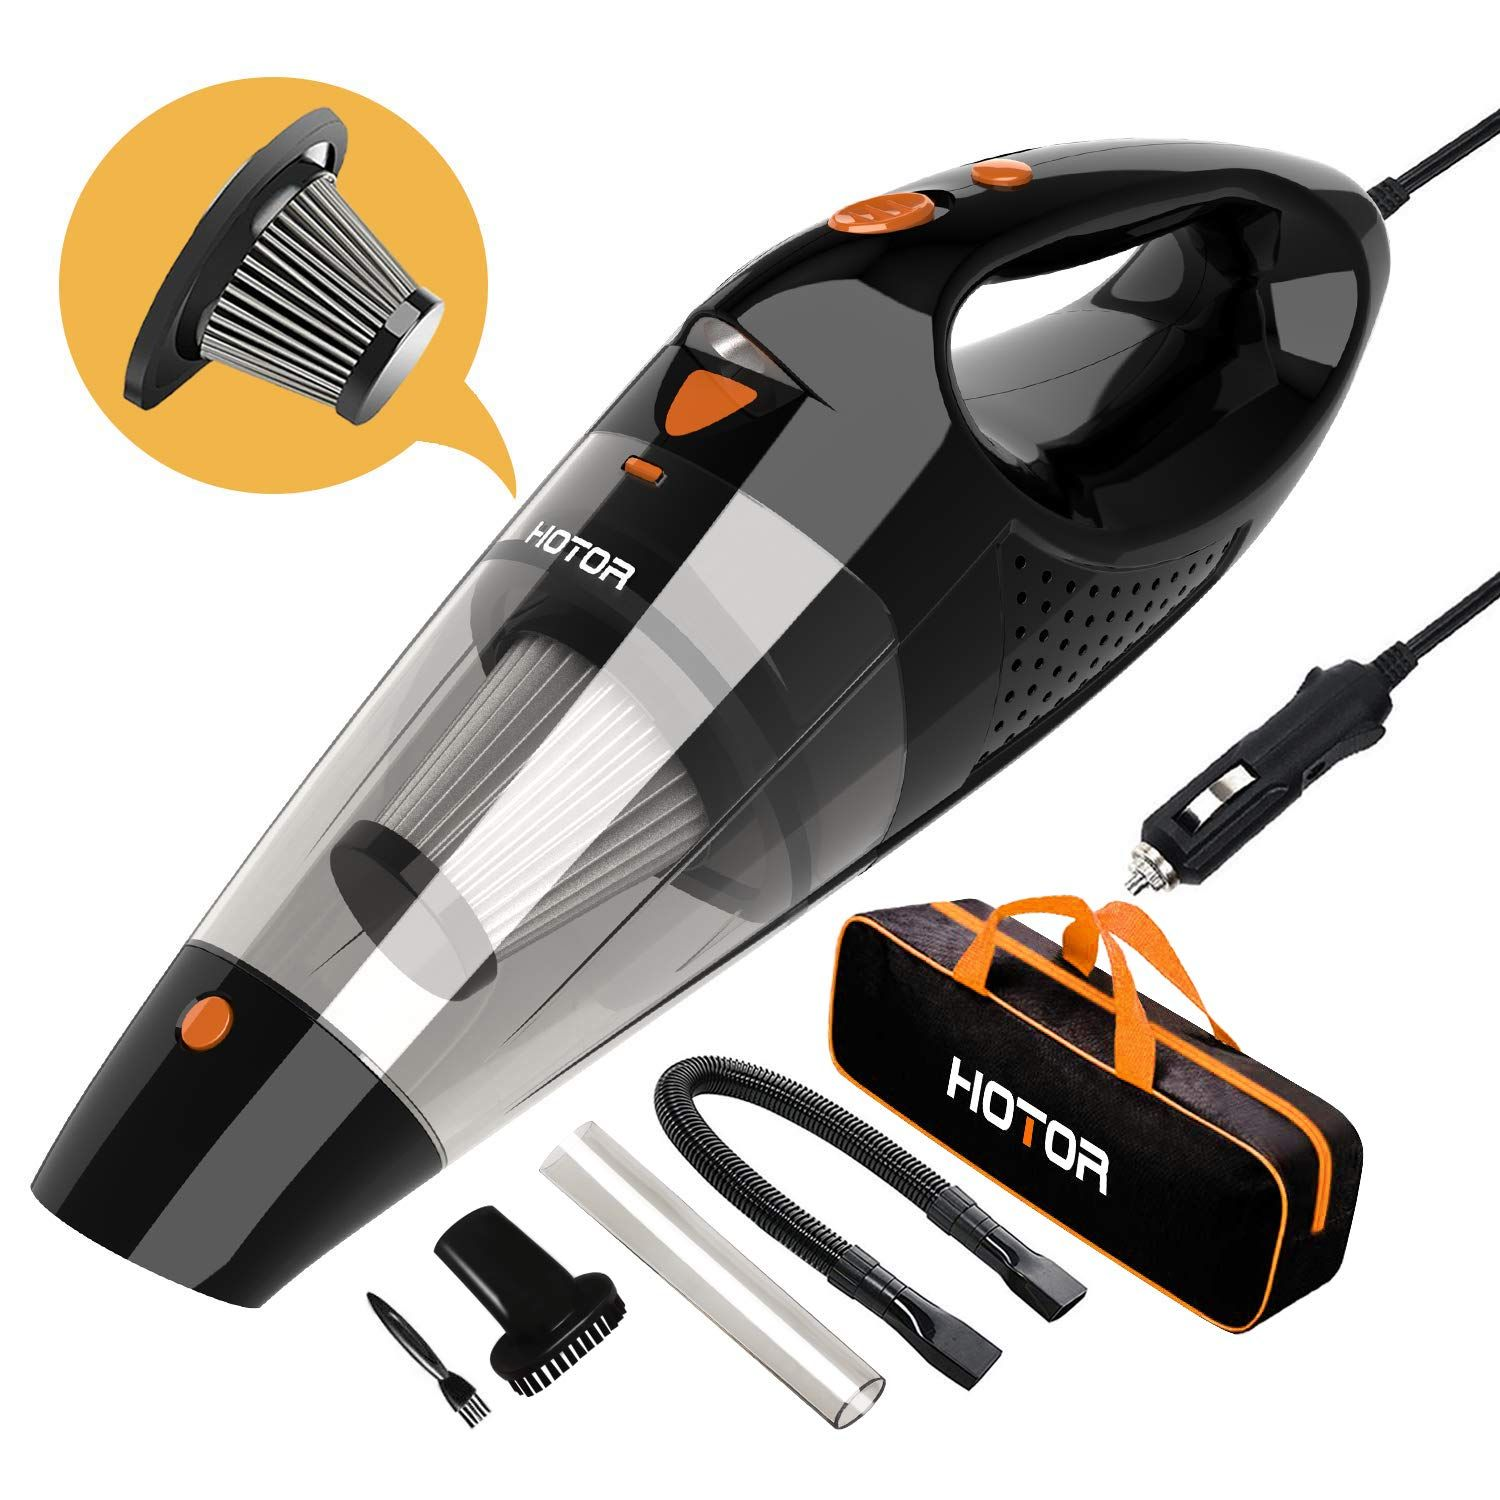 Amazon Corded Car Vacuum Cleaner Just 10.41 W/Code